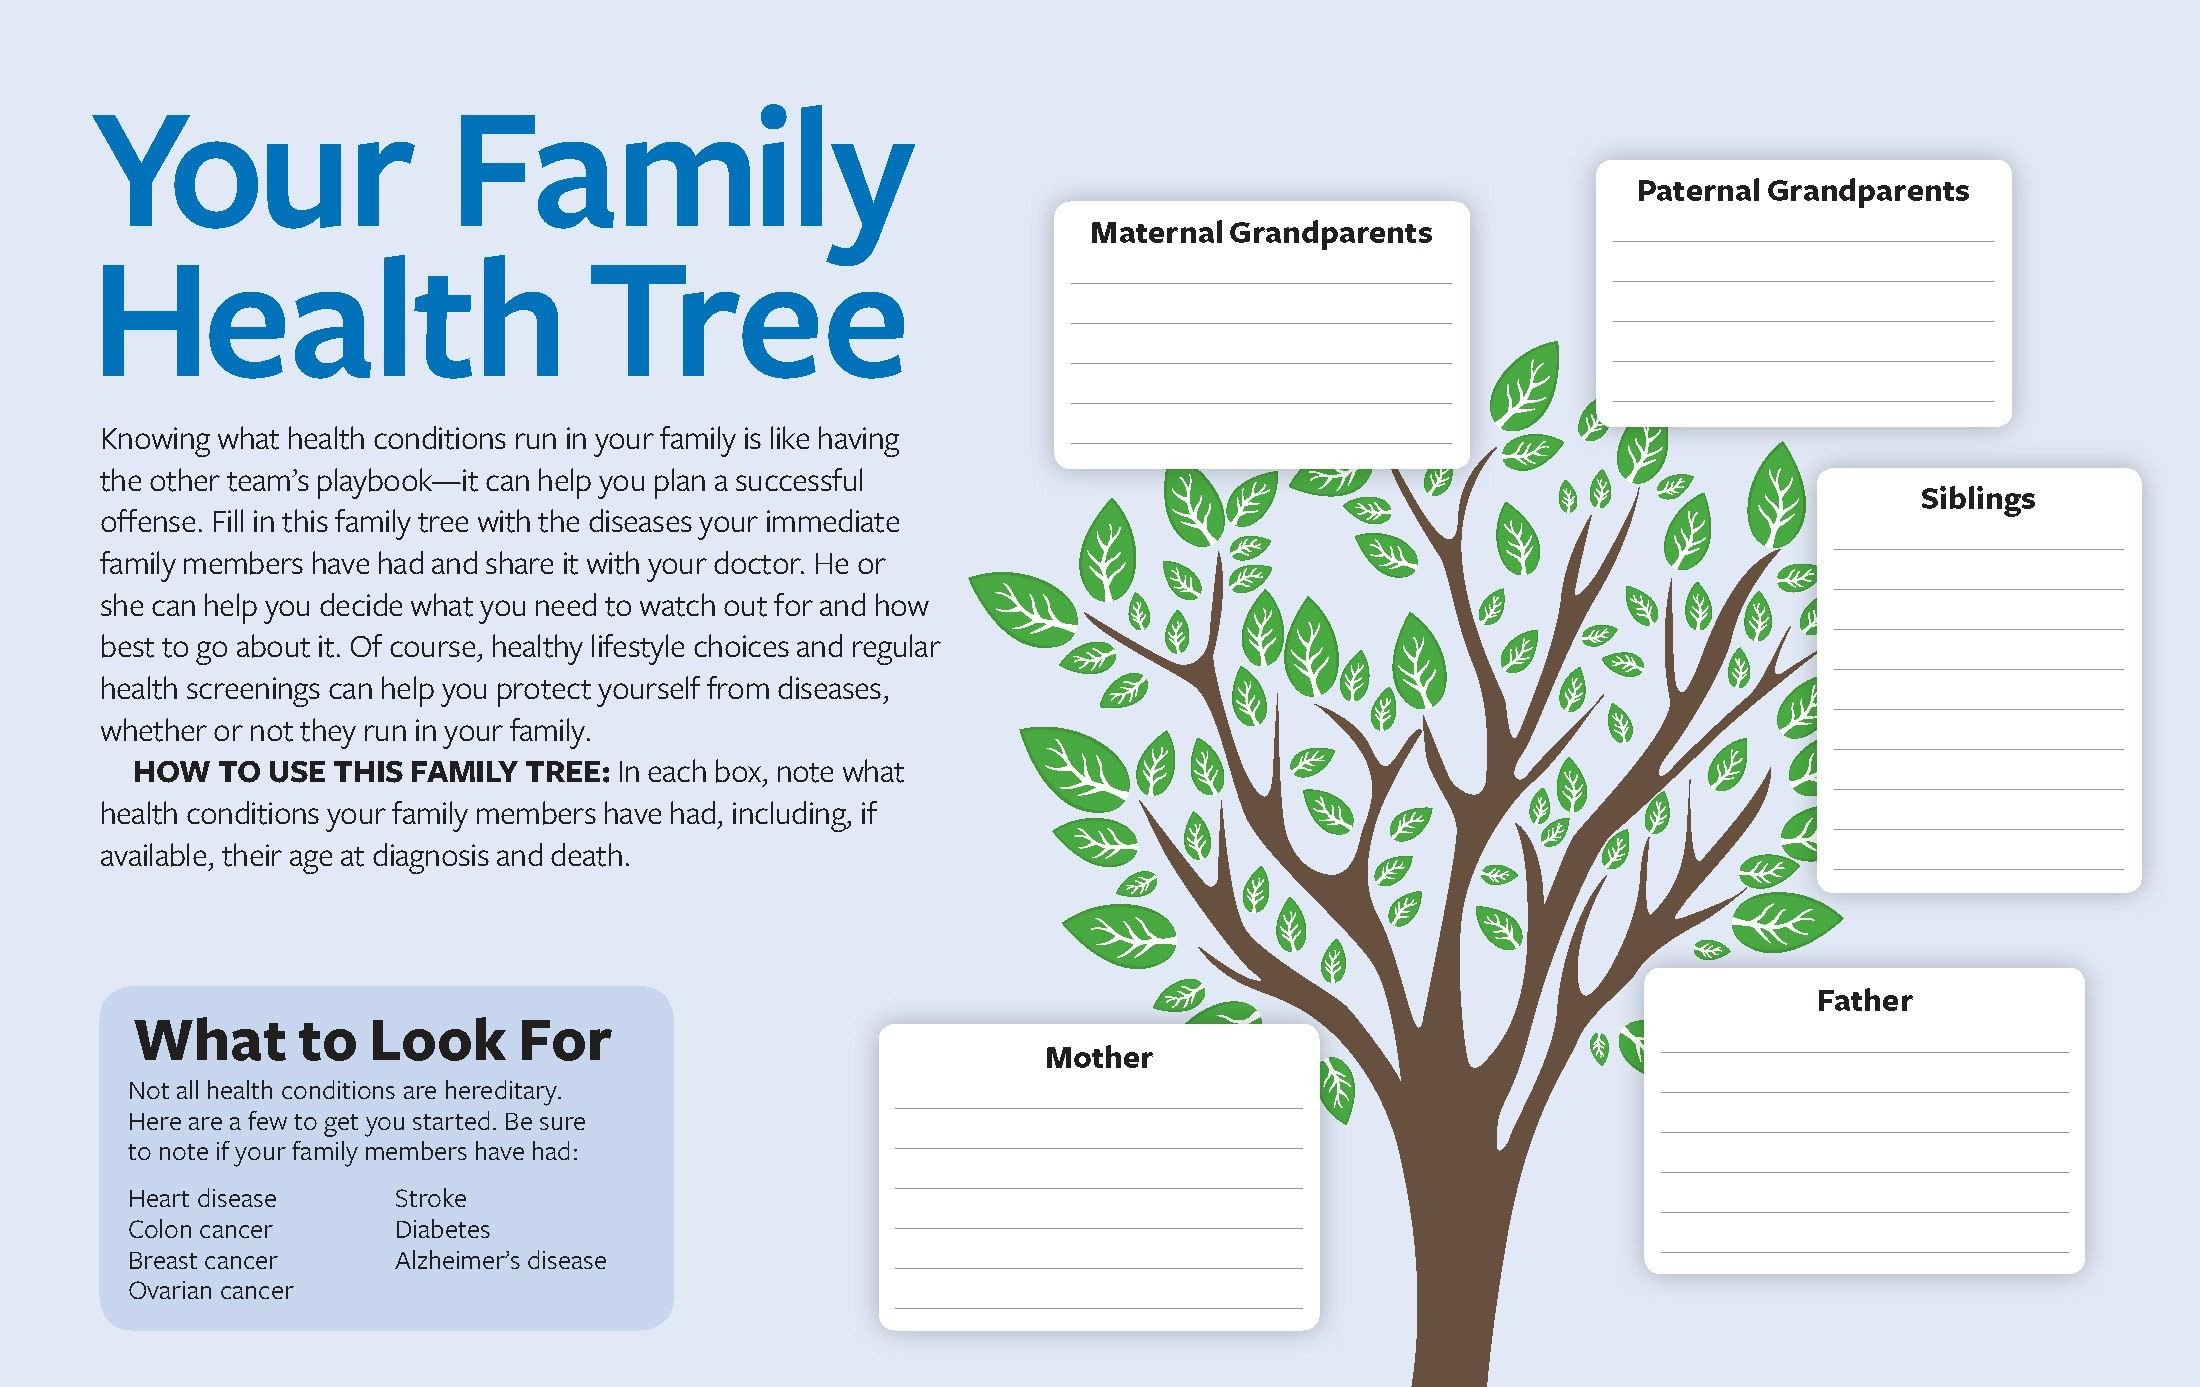 Family Medical Tree [printable] Your Family Health Tree Knowing What Health